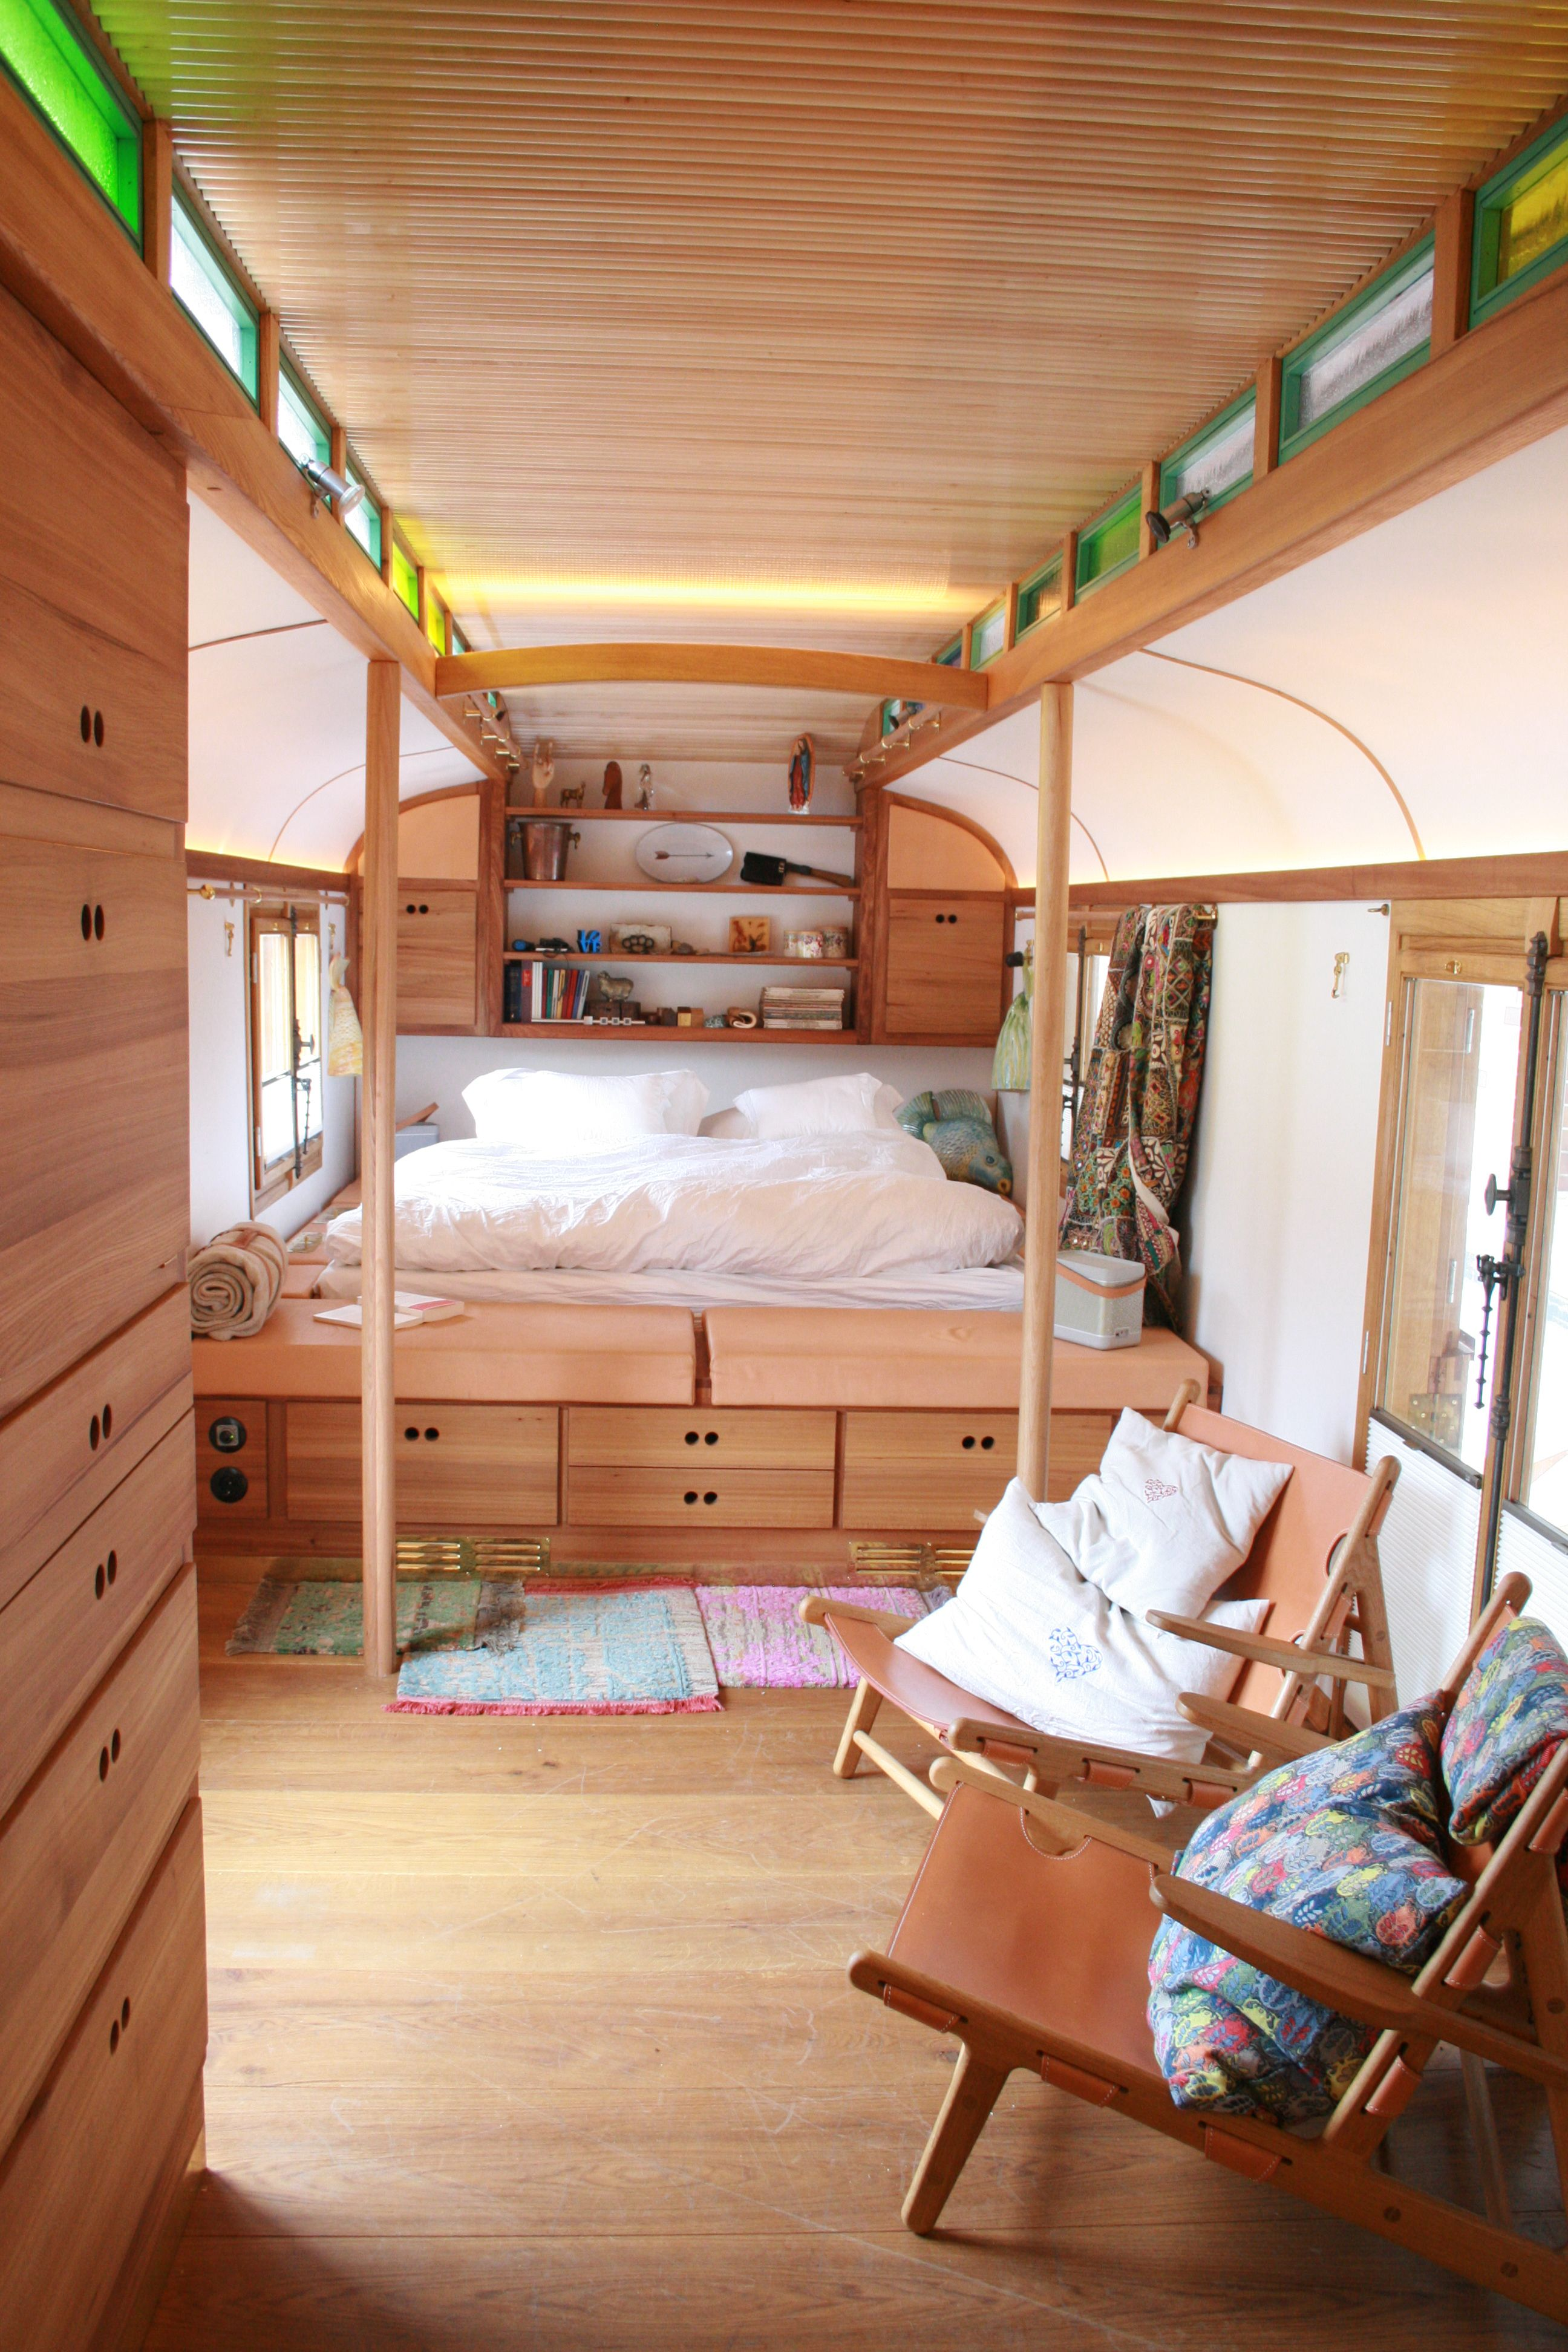 umgebauter zirkuswagen bauwagen pinterest zirkuswagen bauwagen und wohnwagen. Black Bedroom Furniture Sets. Home Design Ideas